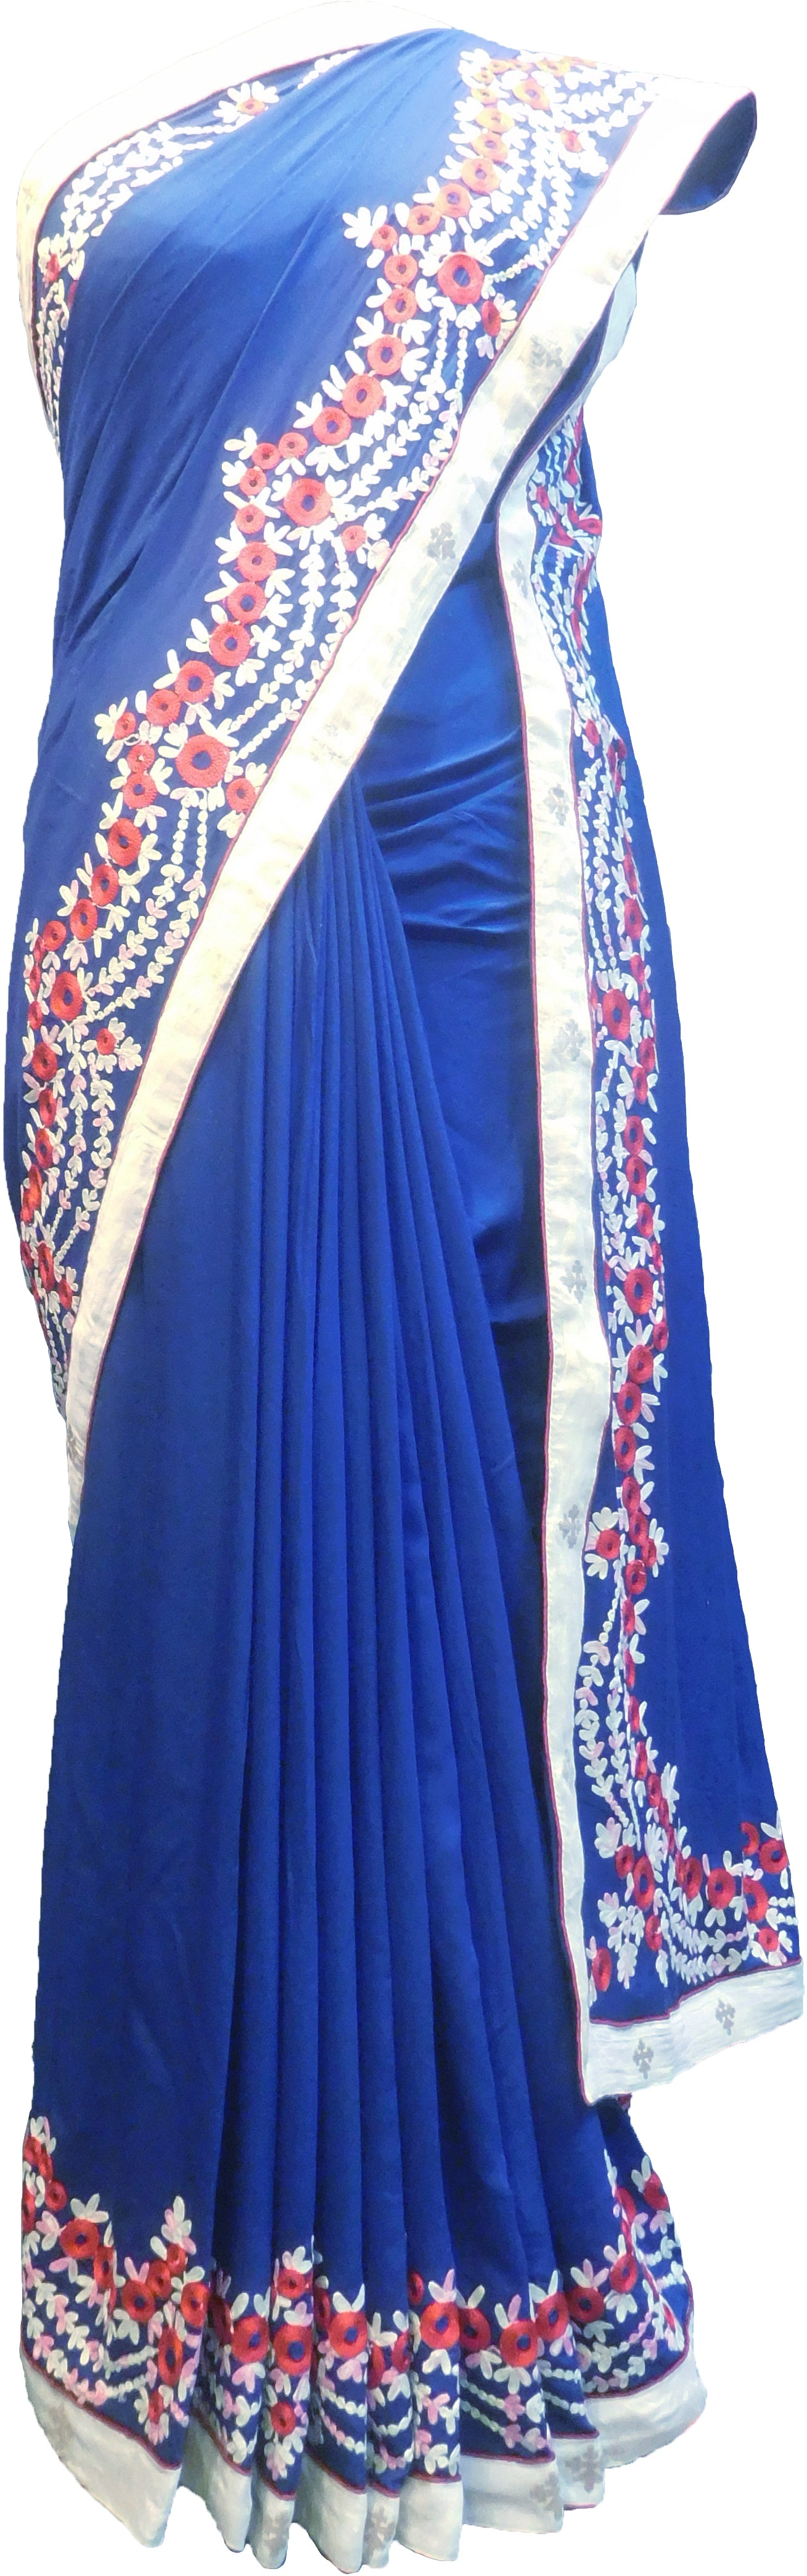 SMSAREE Blue Designer Wedding Partywear Satin (Silk) Thread & Zari Hand Embroidery Work Bridal Saree Sari With Blouse Piece F221